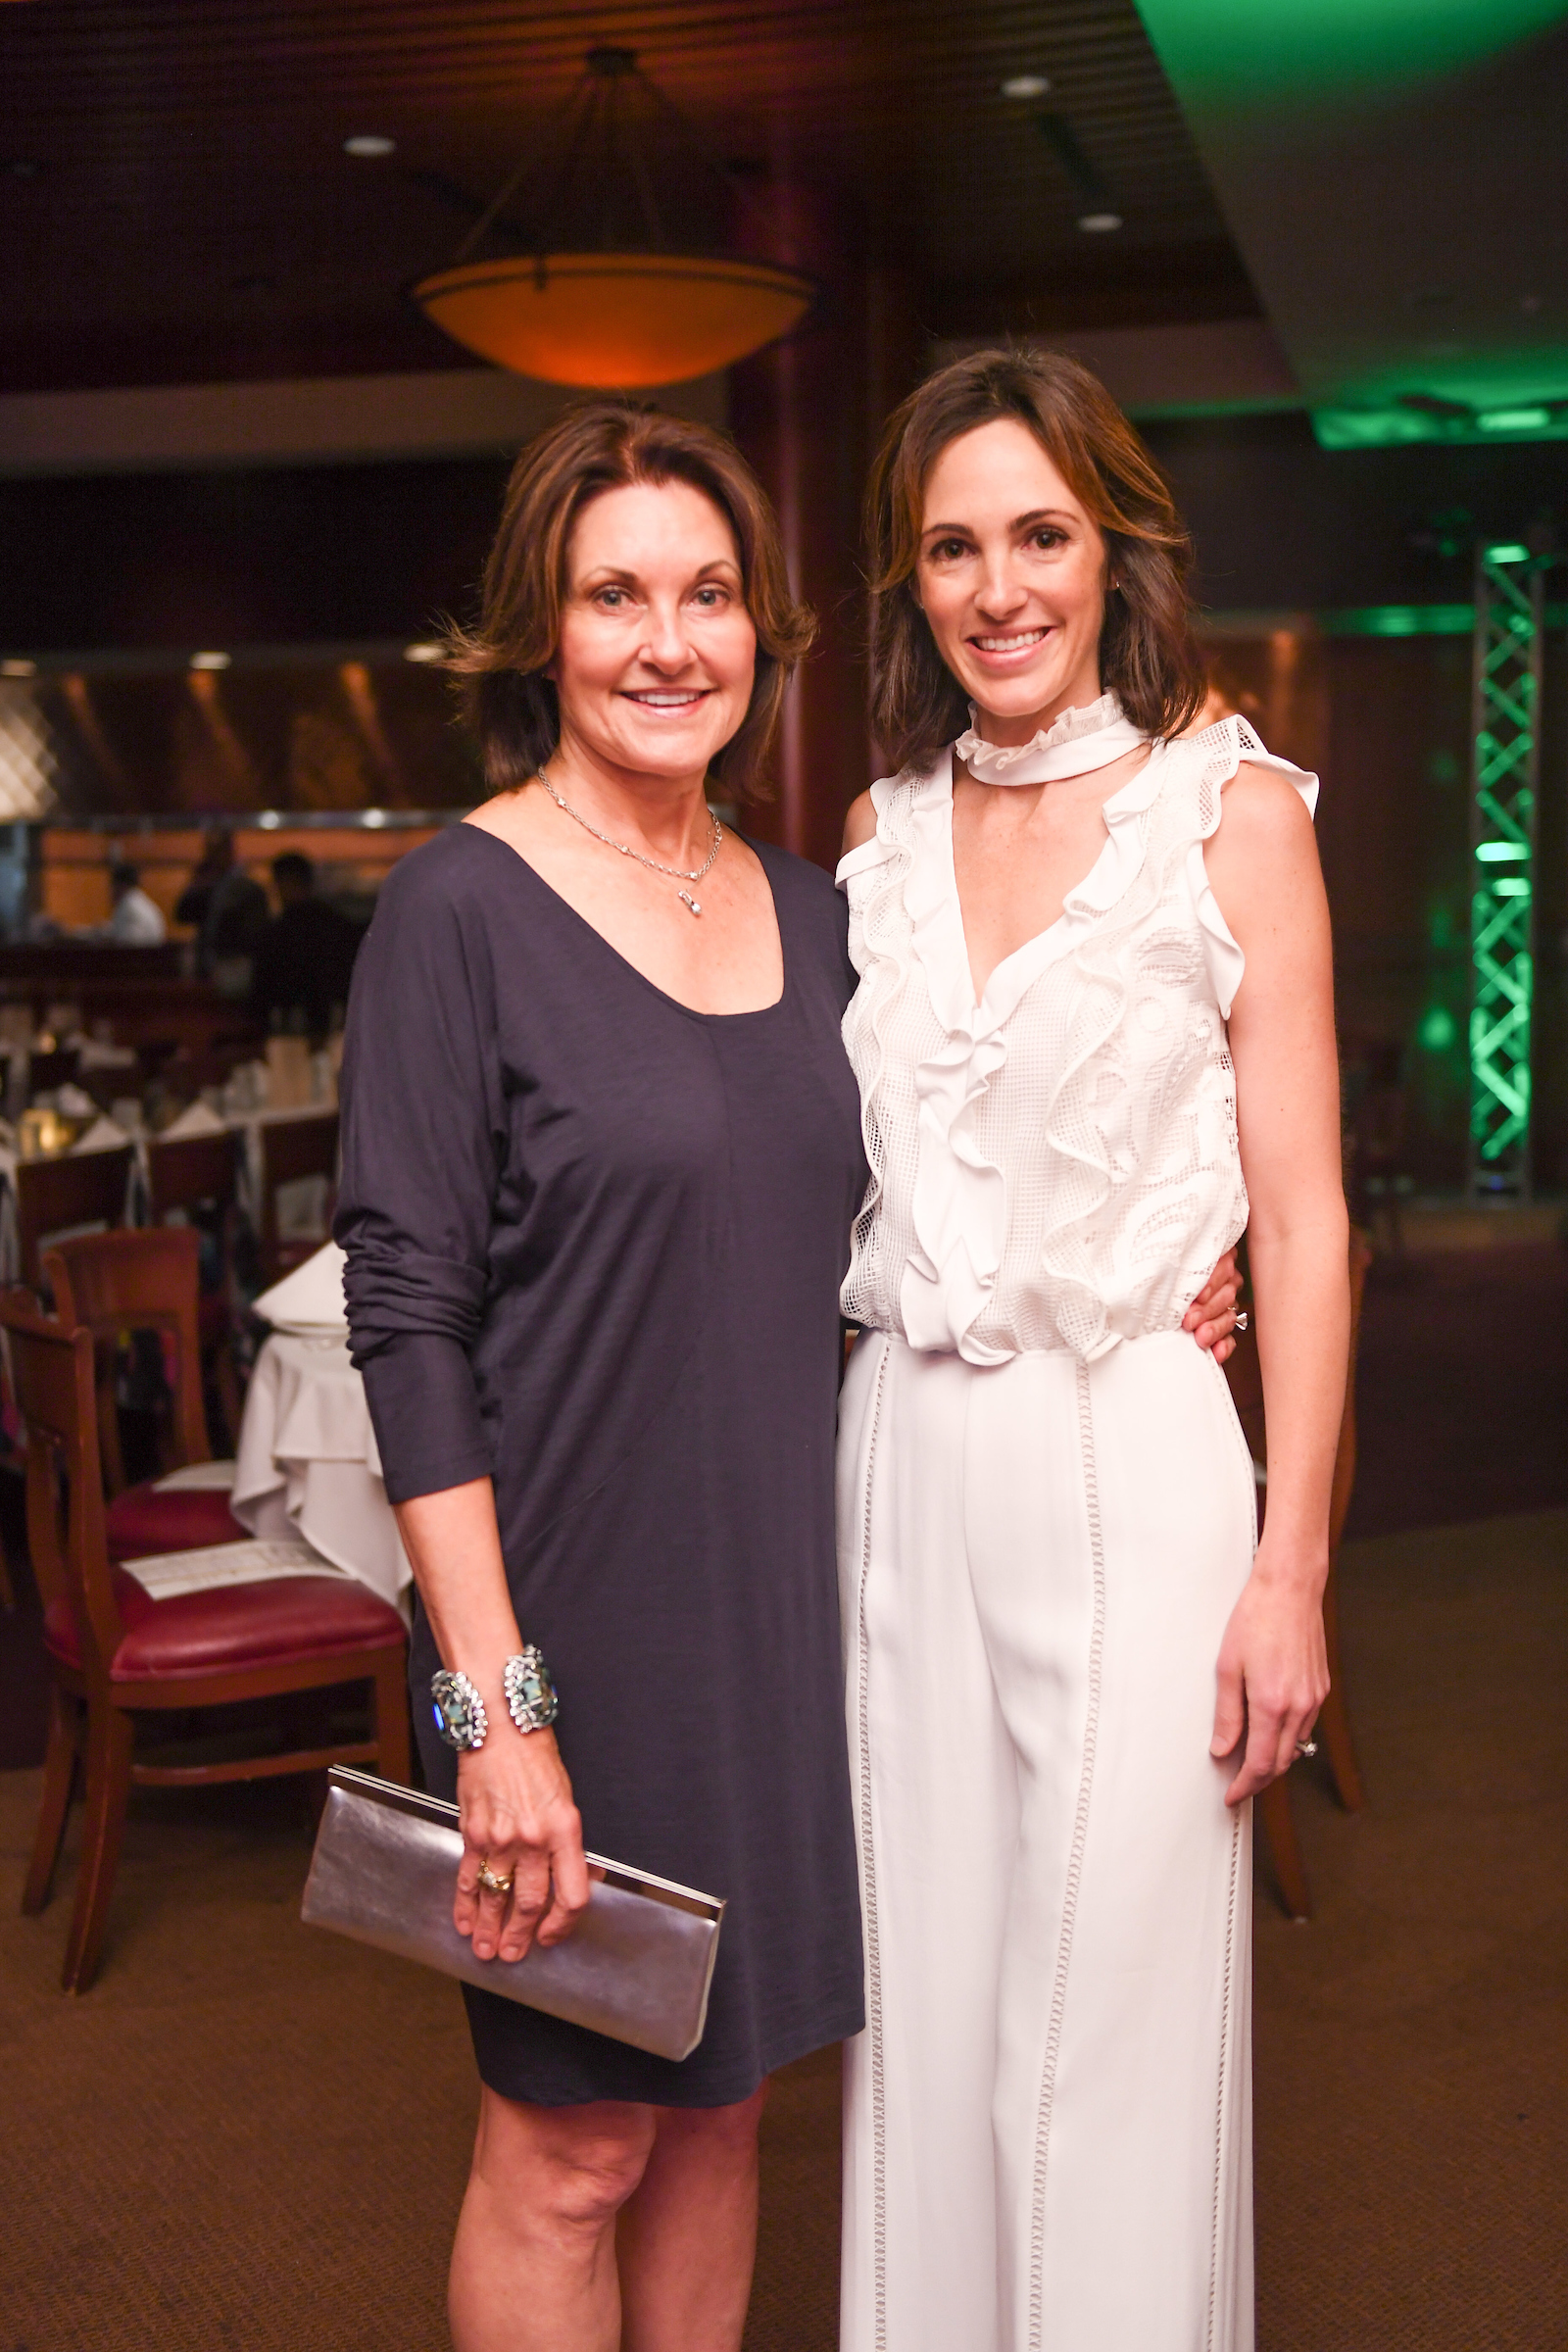 Margaret Morris and Lindsay Mousoudakis, Owner of Muse